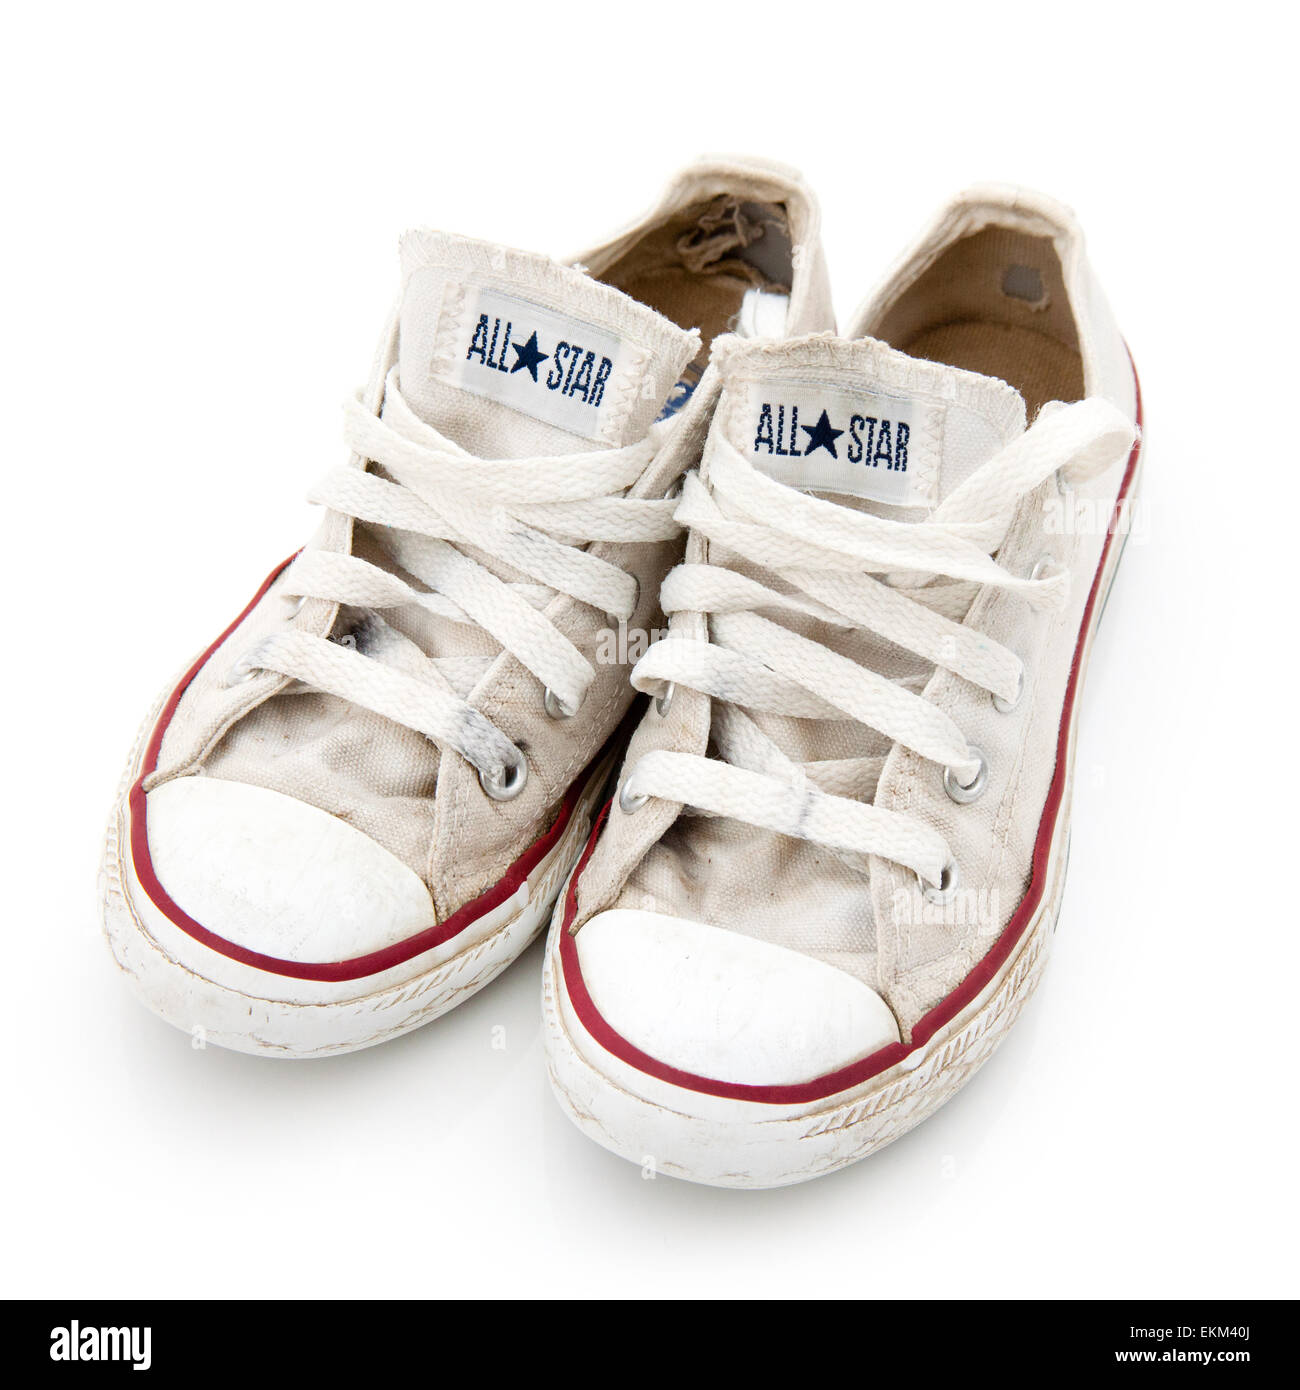 8b7043457040 Used children s converse shoes isolated on a white studio background. -  Stock Image